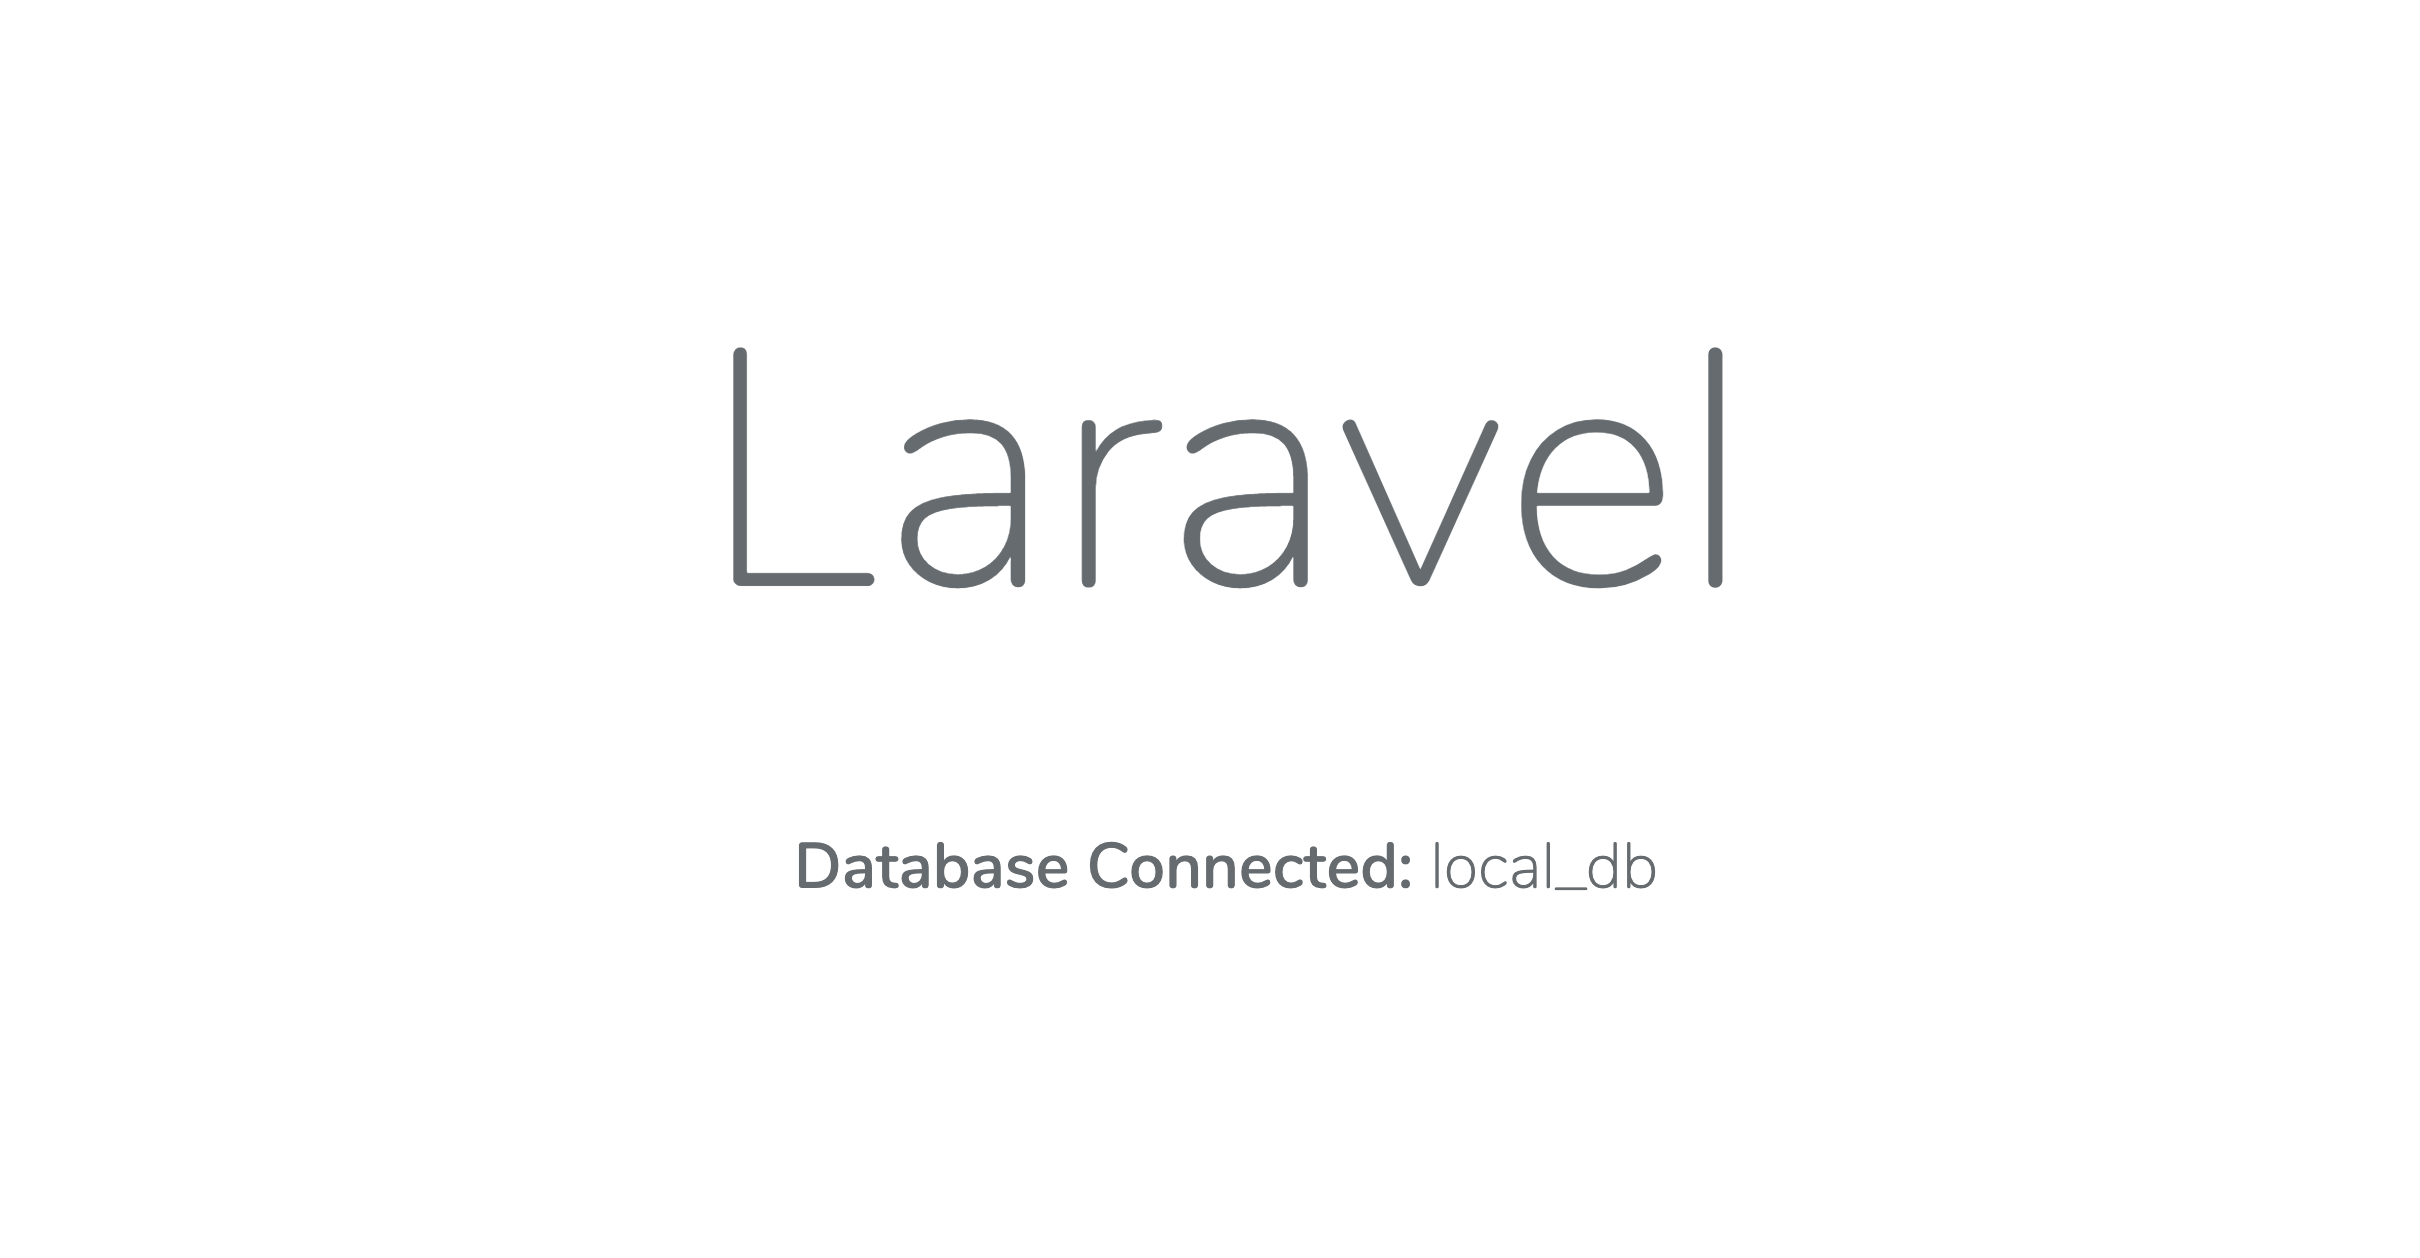 The Laravel application running locally using Docker Compose